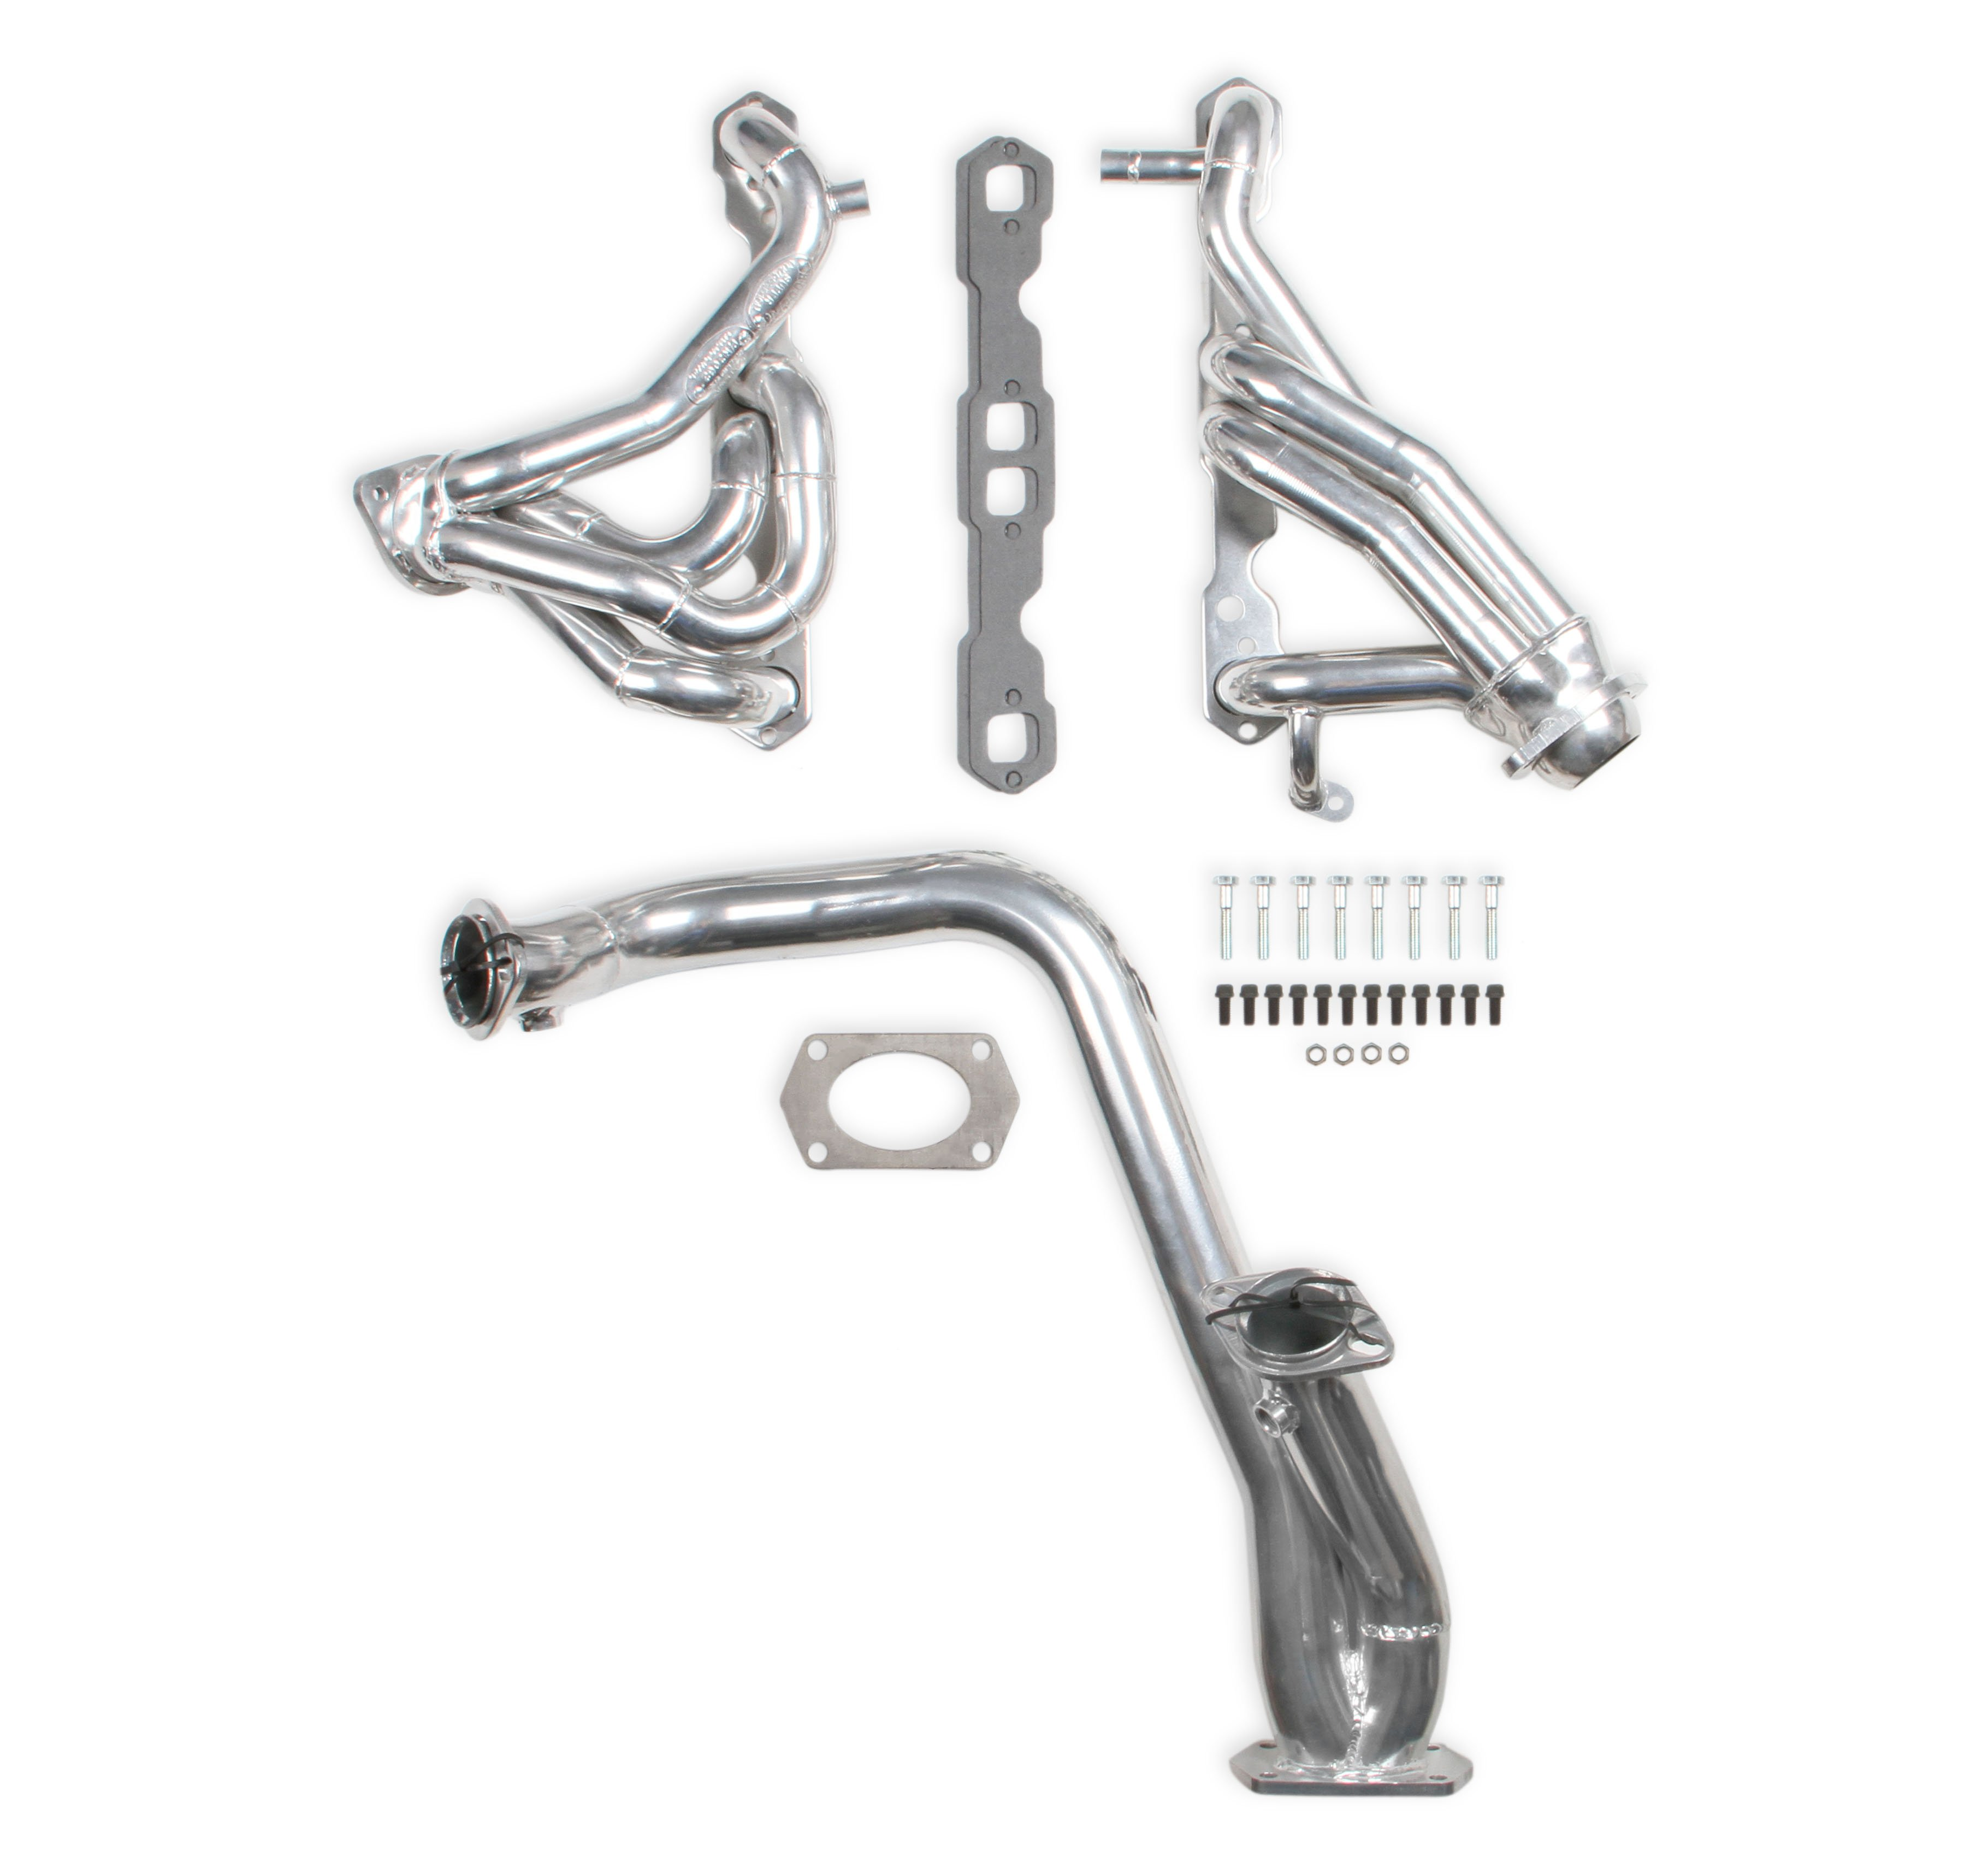 Hooker 2062-1HKR Hooker Super Competition Shorty Headers